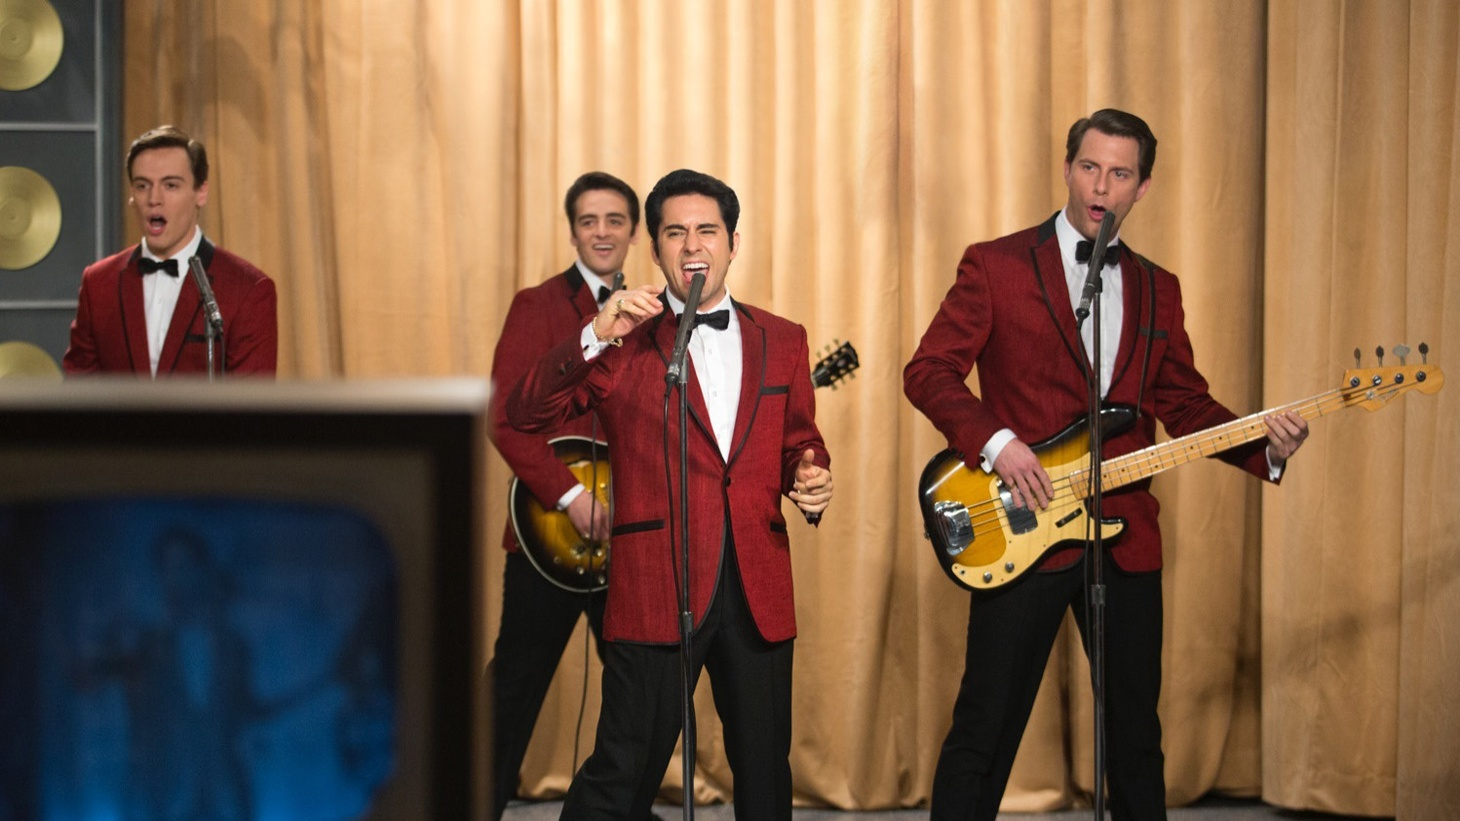 In Clint Eastwood's film version of Jersey Boys, the first signs of trouble come in the opening scene...